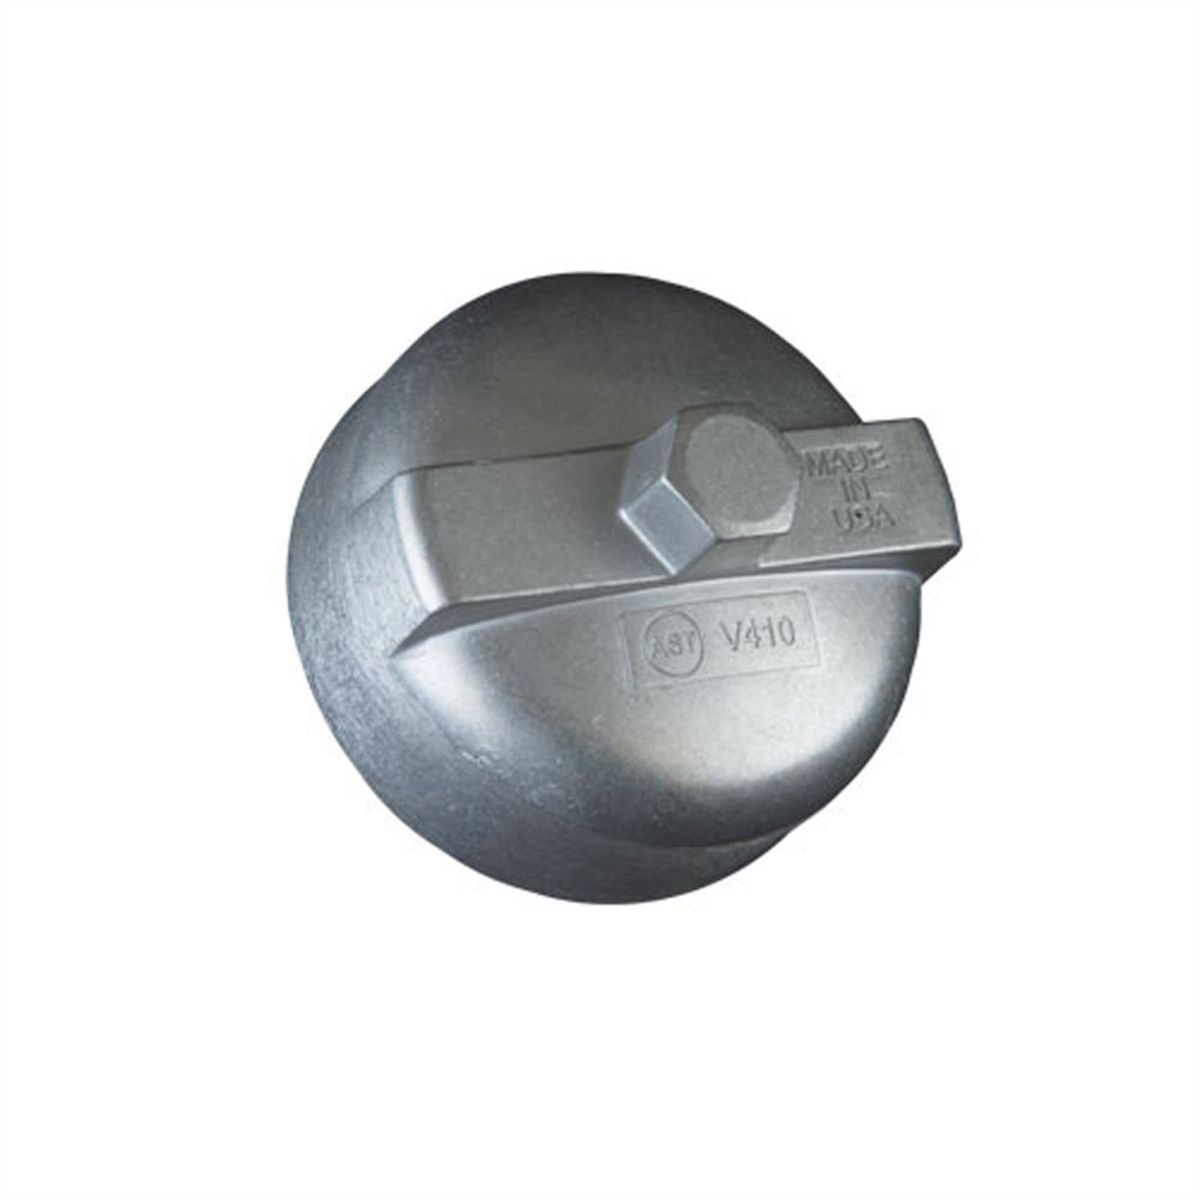 hight resolution of oil filter cap wrench bmw volvo 9995679